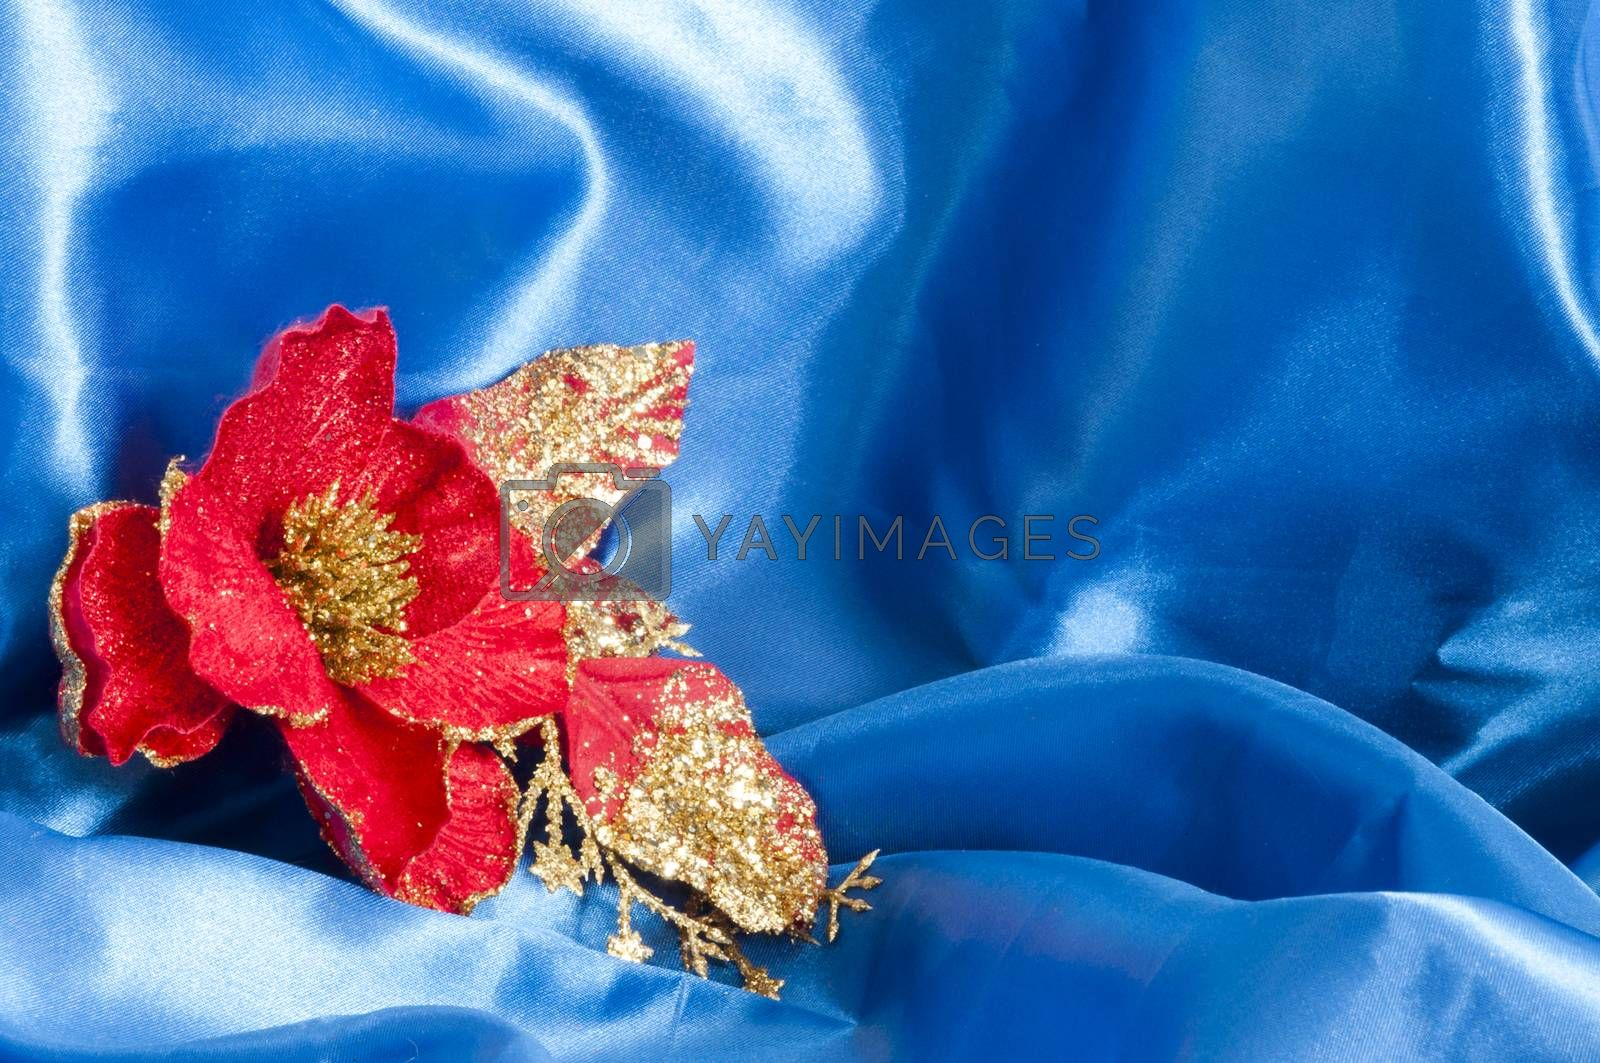 a Christmas decorations on a blue background